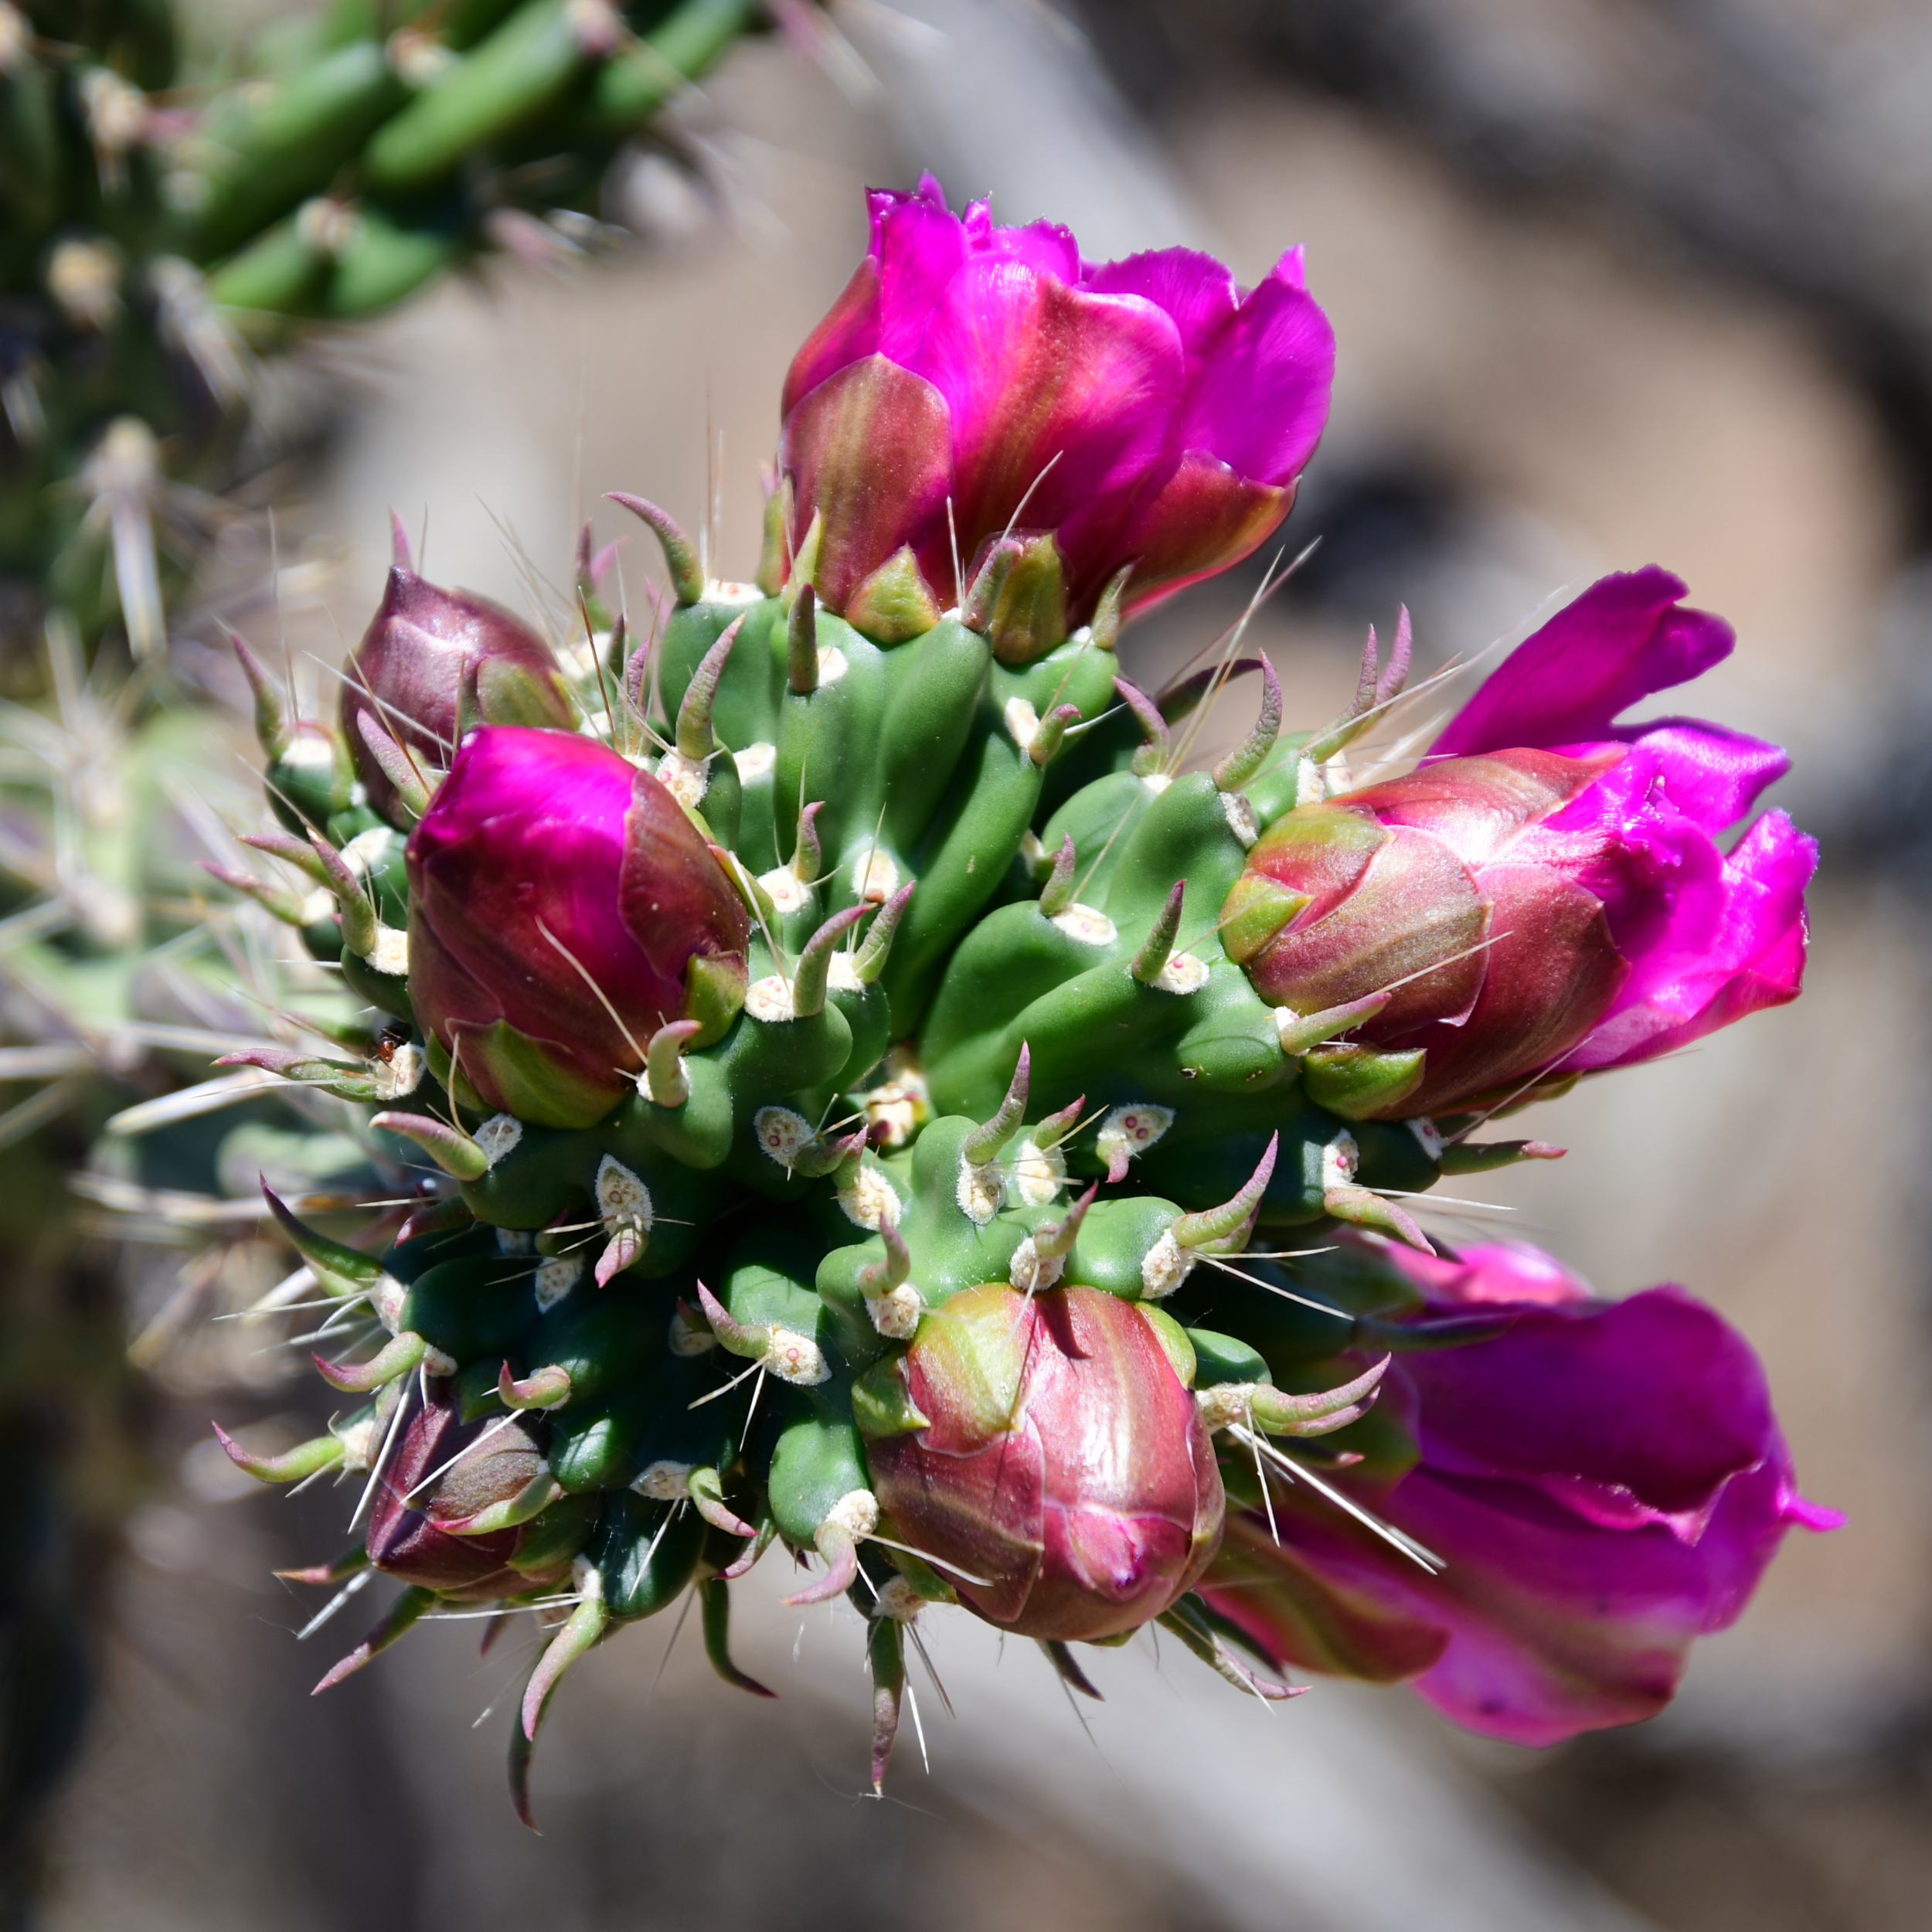 Cane Cholla Cactus Flower Buds